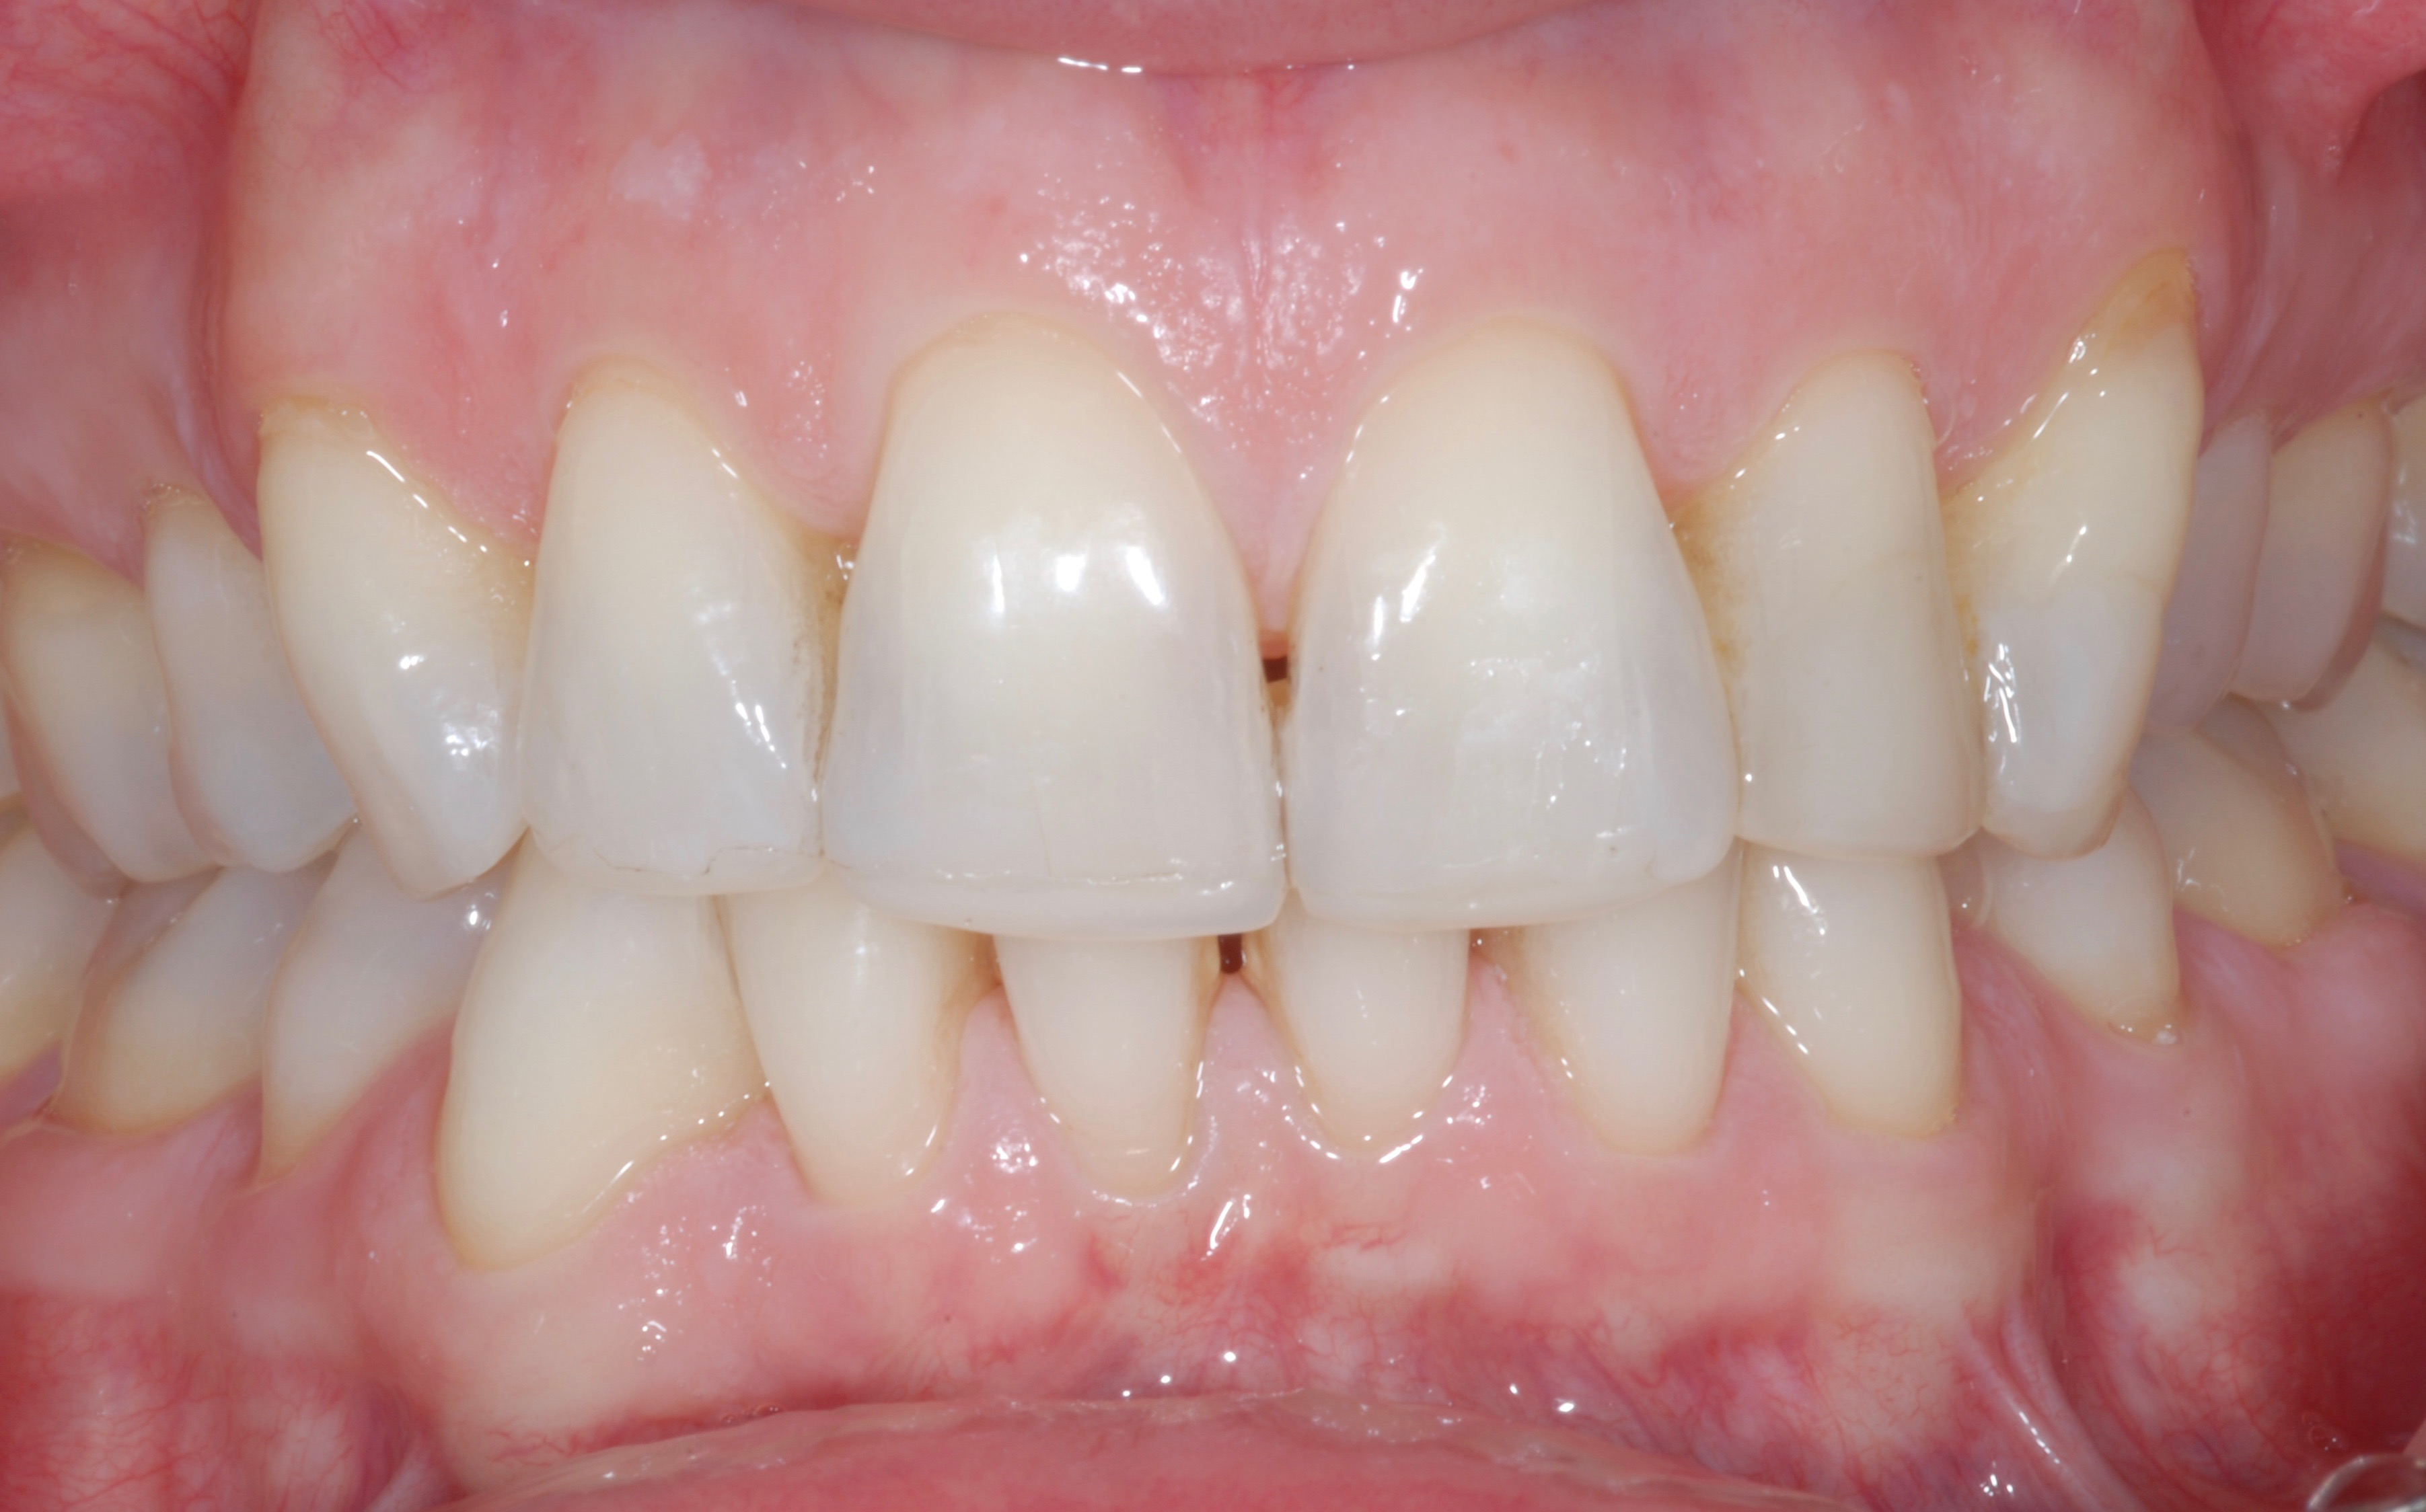 Ten Veneers Smile - Before